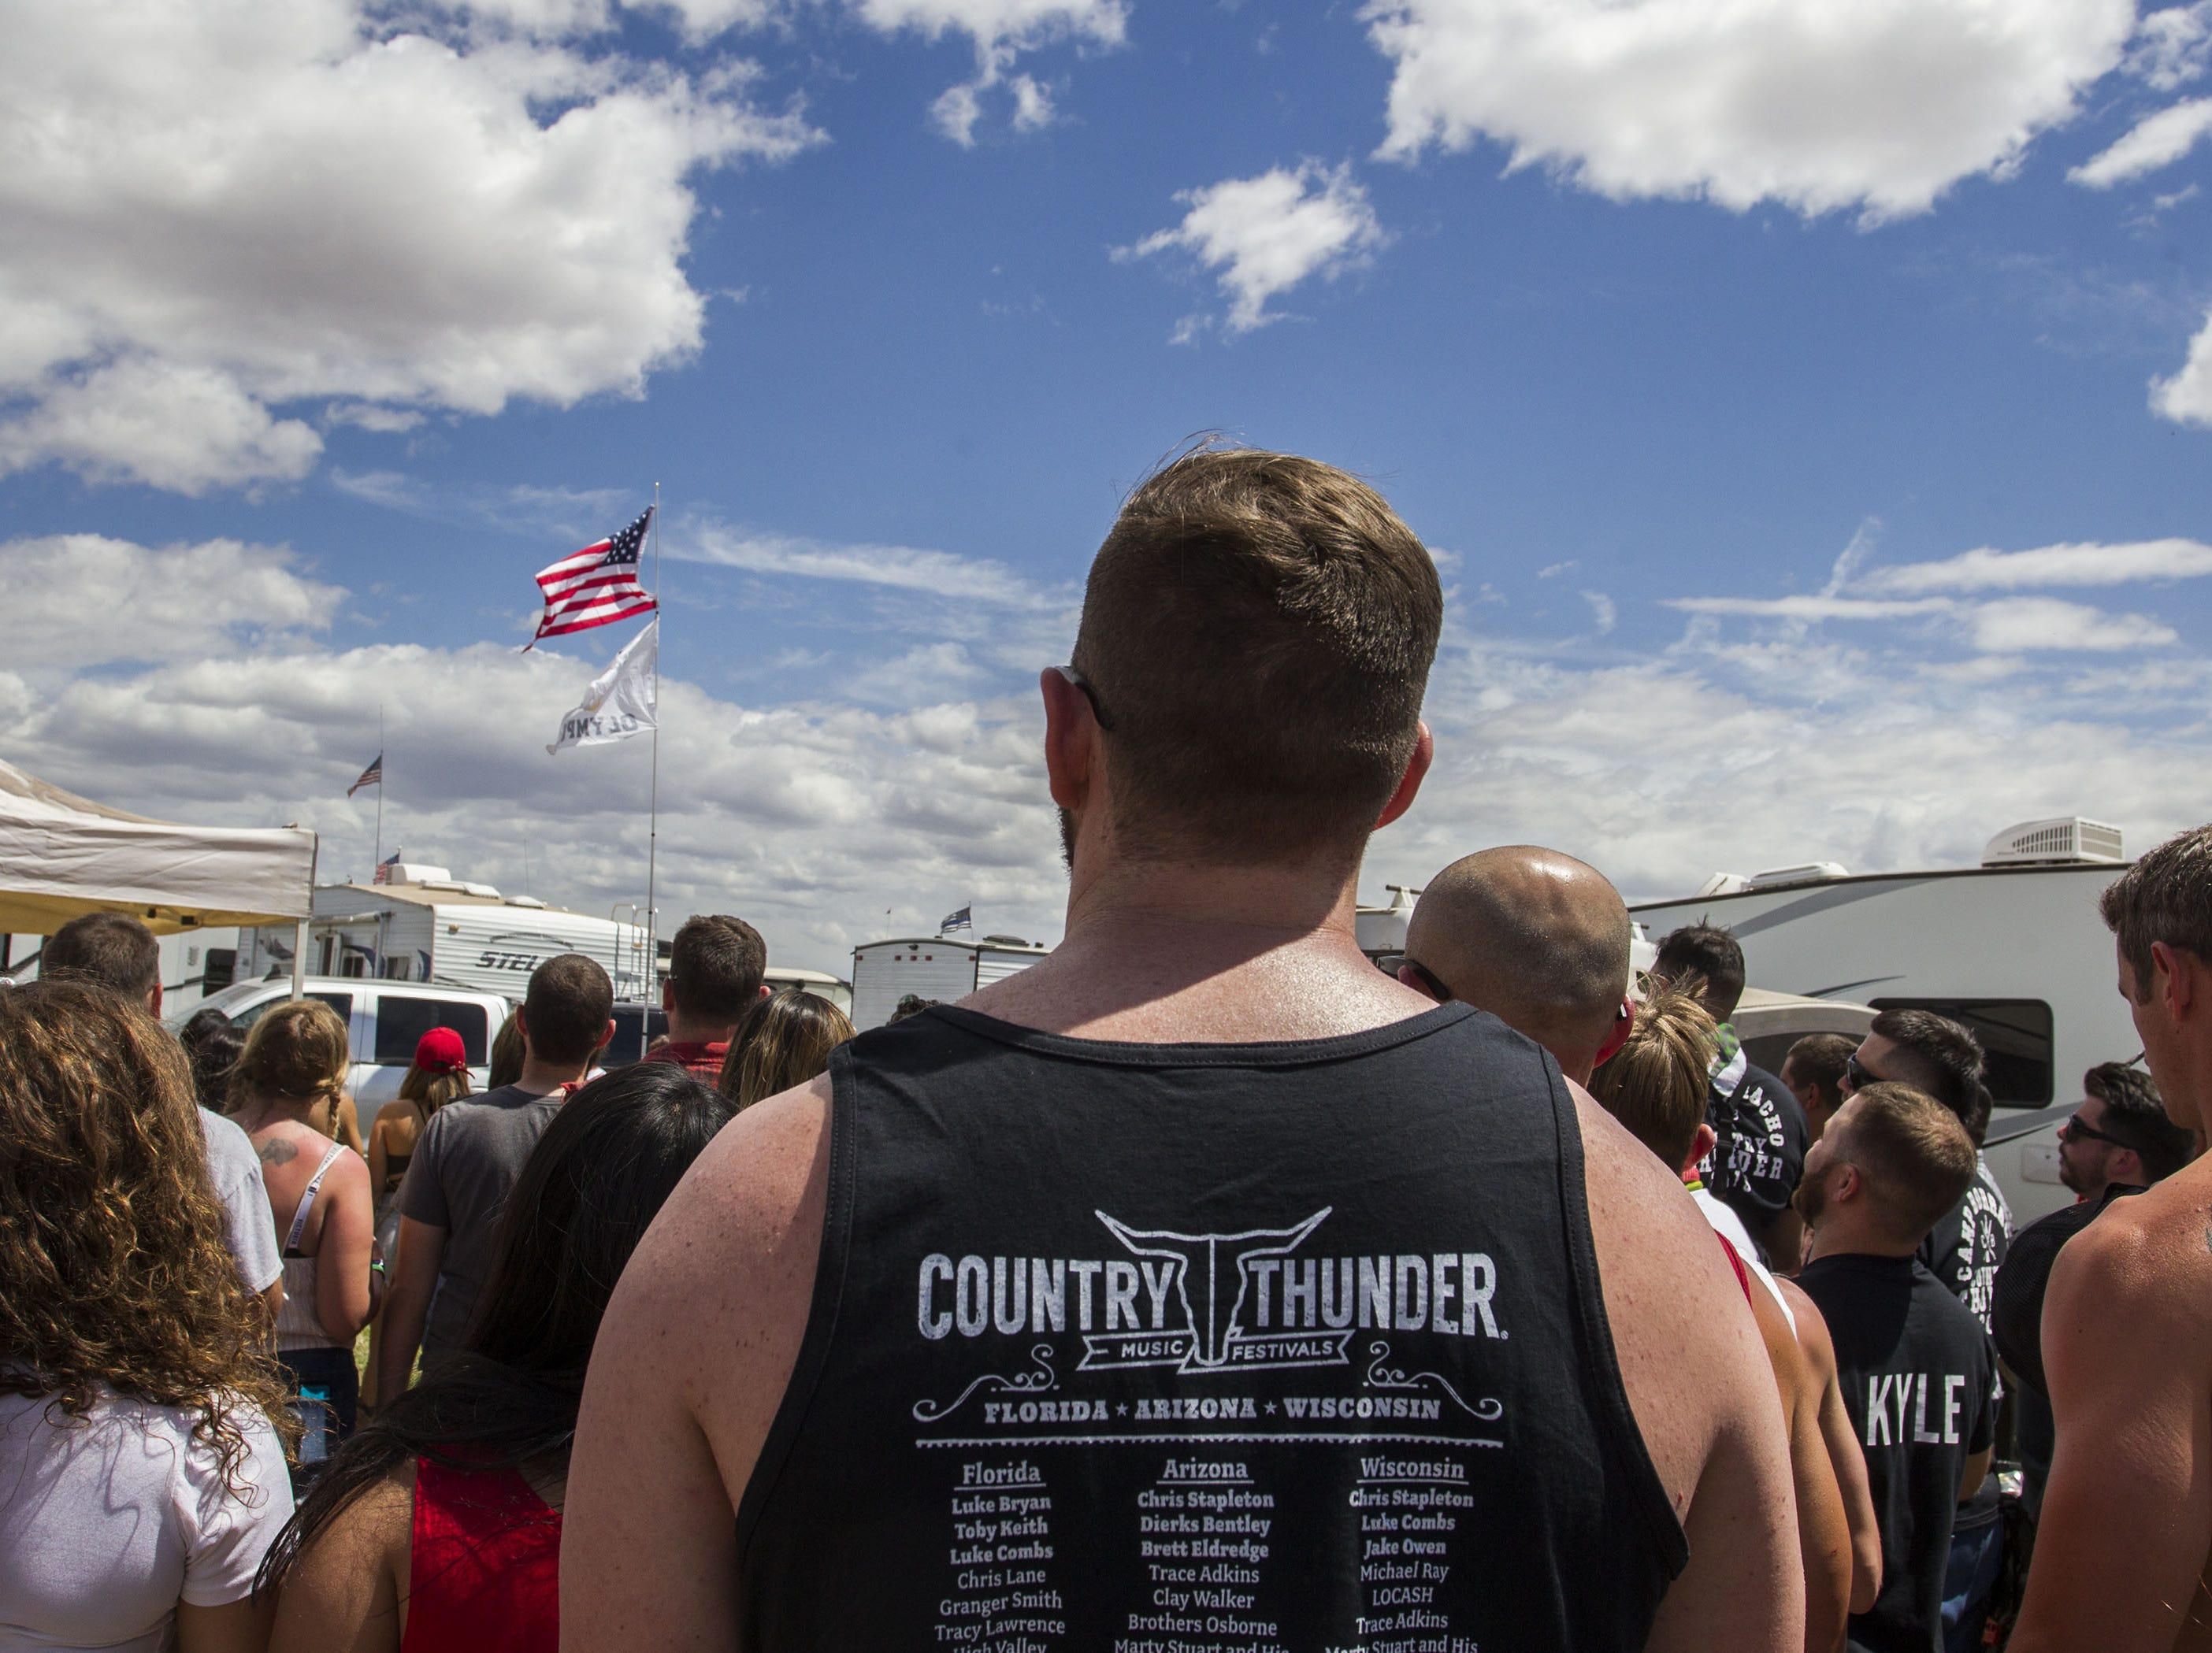 Beer Olympic participates stand for the National Anthem before their games at Country Thunder Arizona Friday, April 12, 2019, in Florence, Arizona.